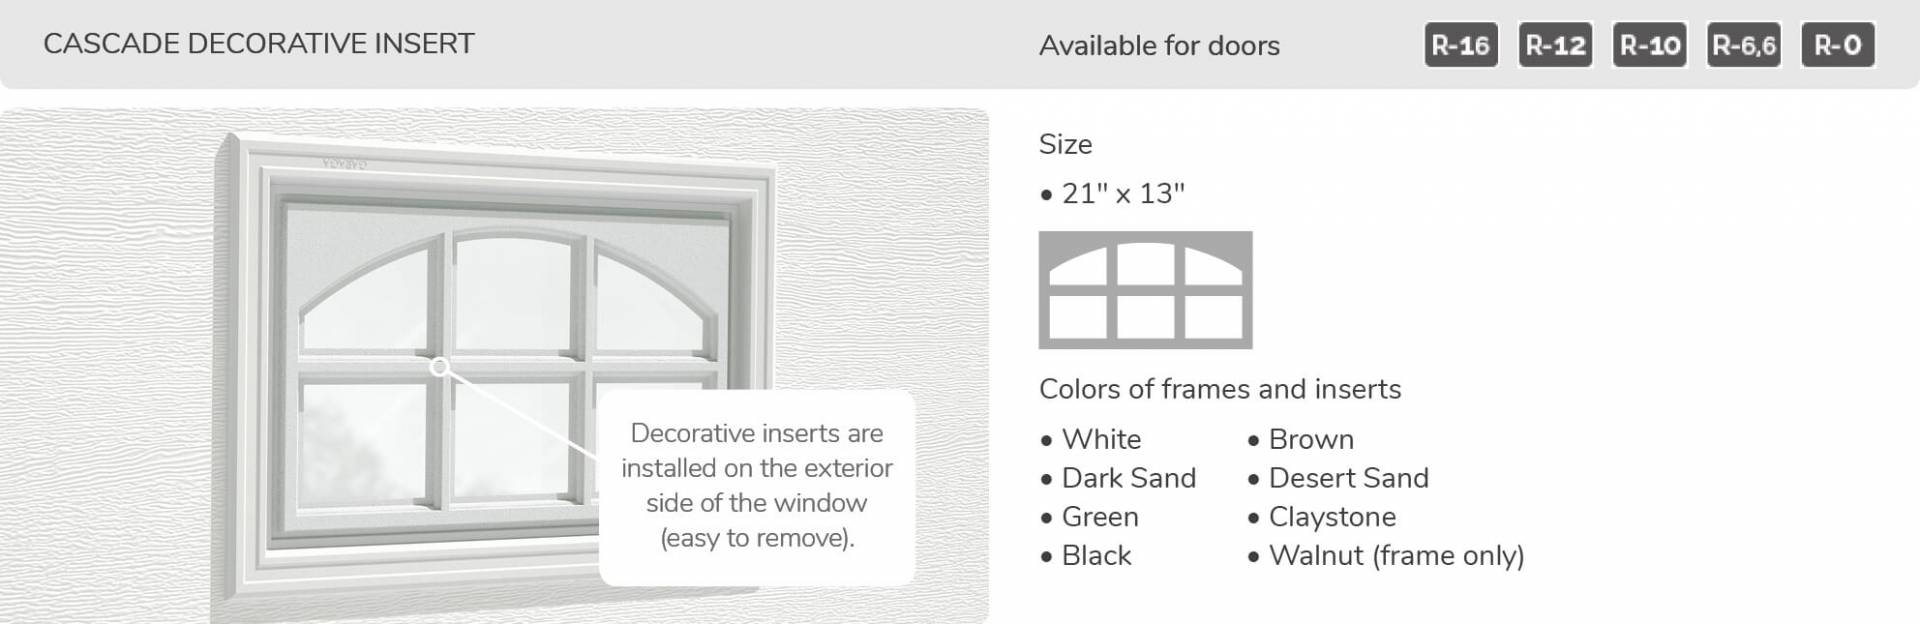 Cascade Decorative Inserts, 21' x 13', available for doors R-16, R-12, R-10, R-6,6 and R-0